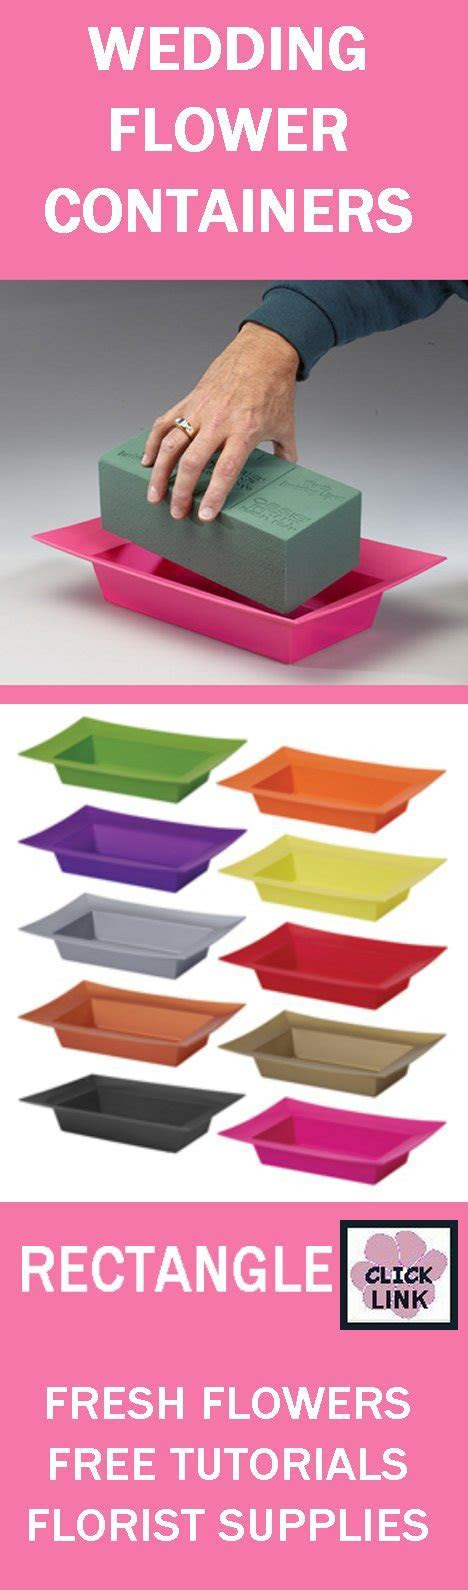 Professional Floral Supply   Rectangle Flower Containers